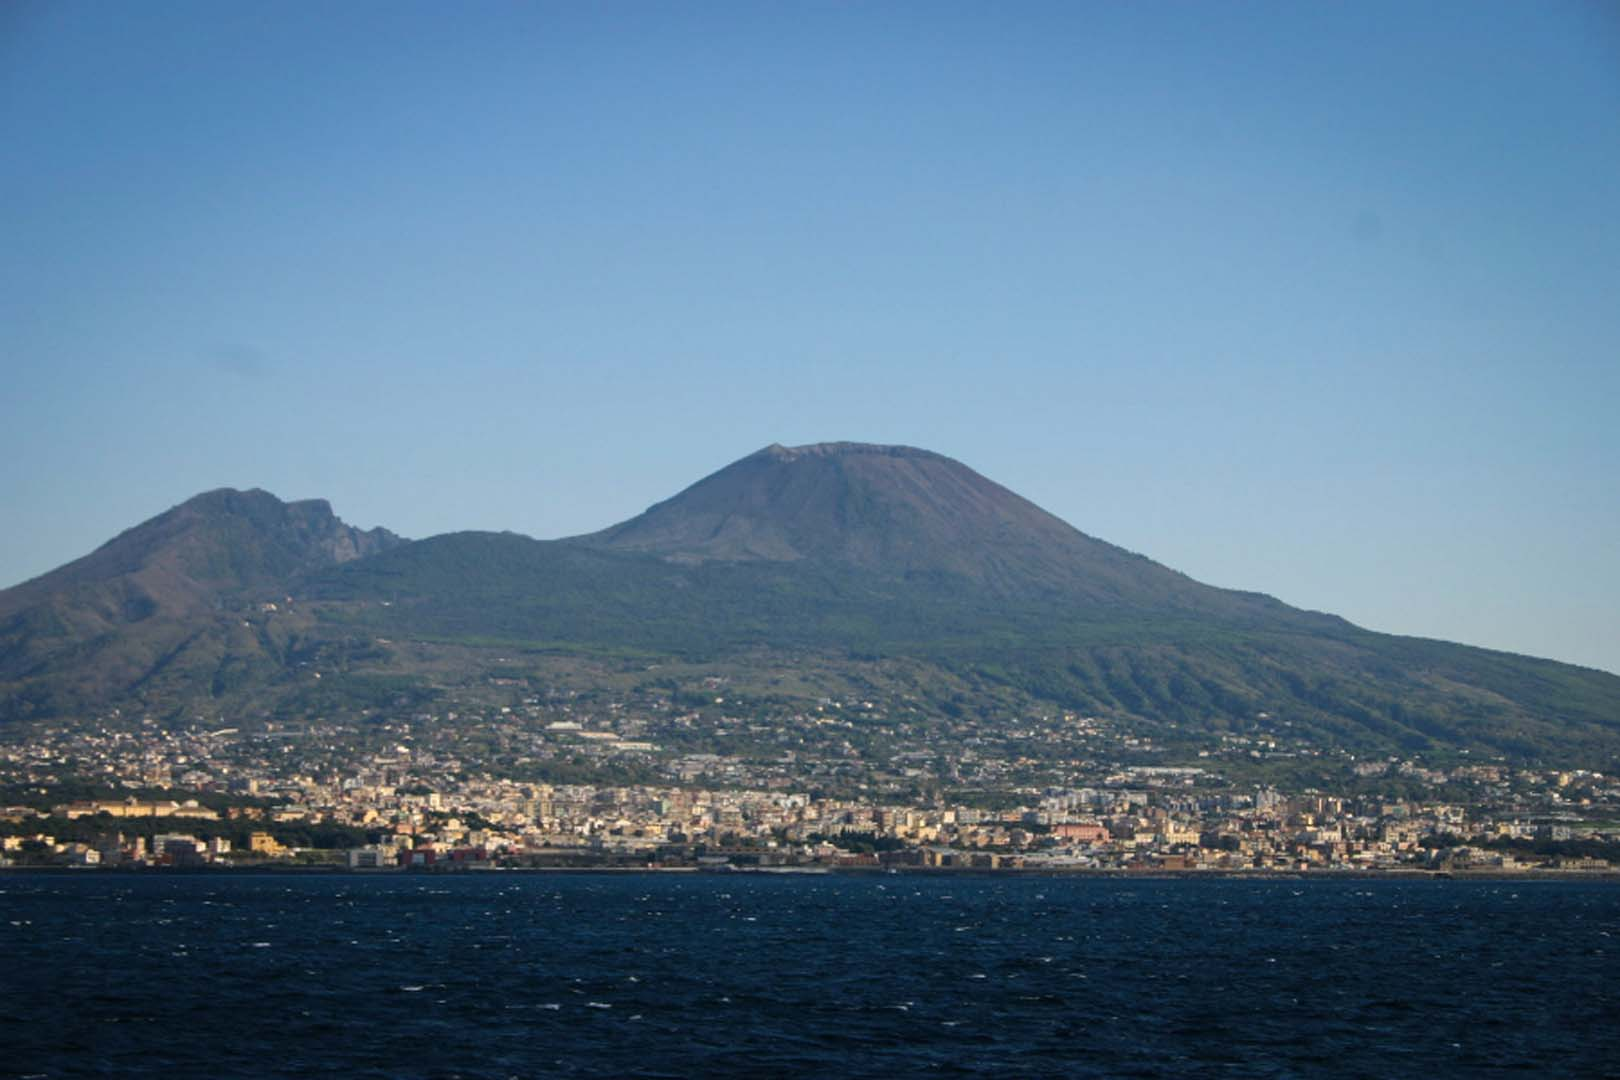 mount vesuvius Mount vesuvius is quite close to naples (and pompeii) and can be visited as a day trip from rome, naples or sorrento by public train and bus.